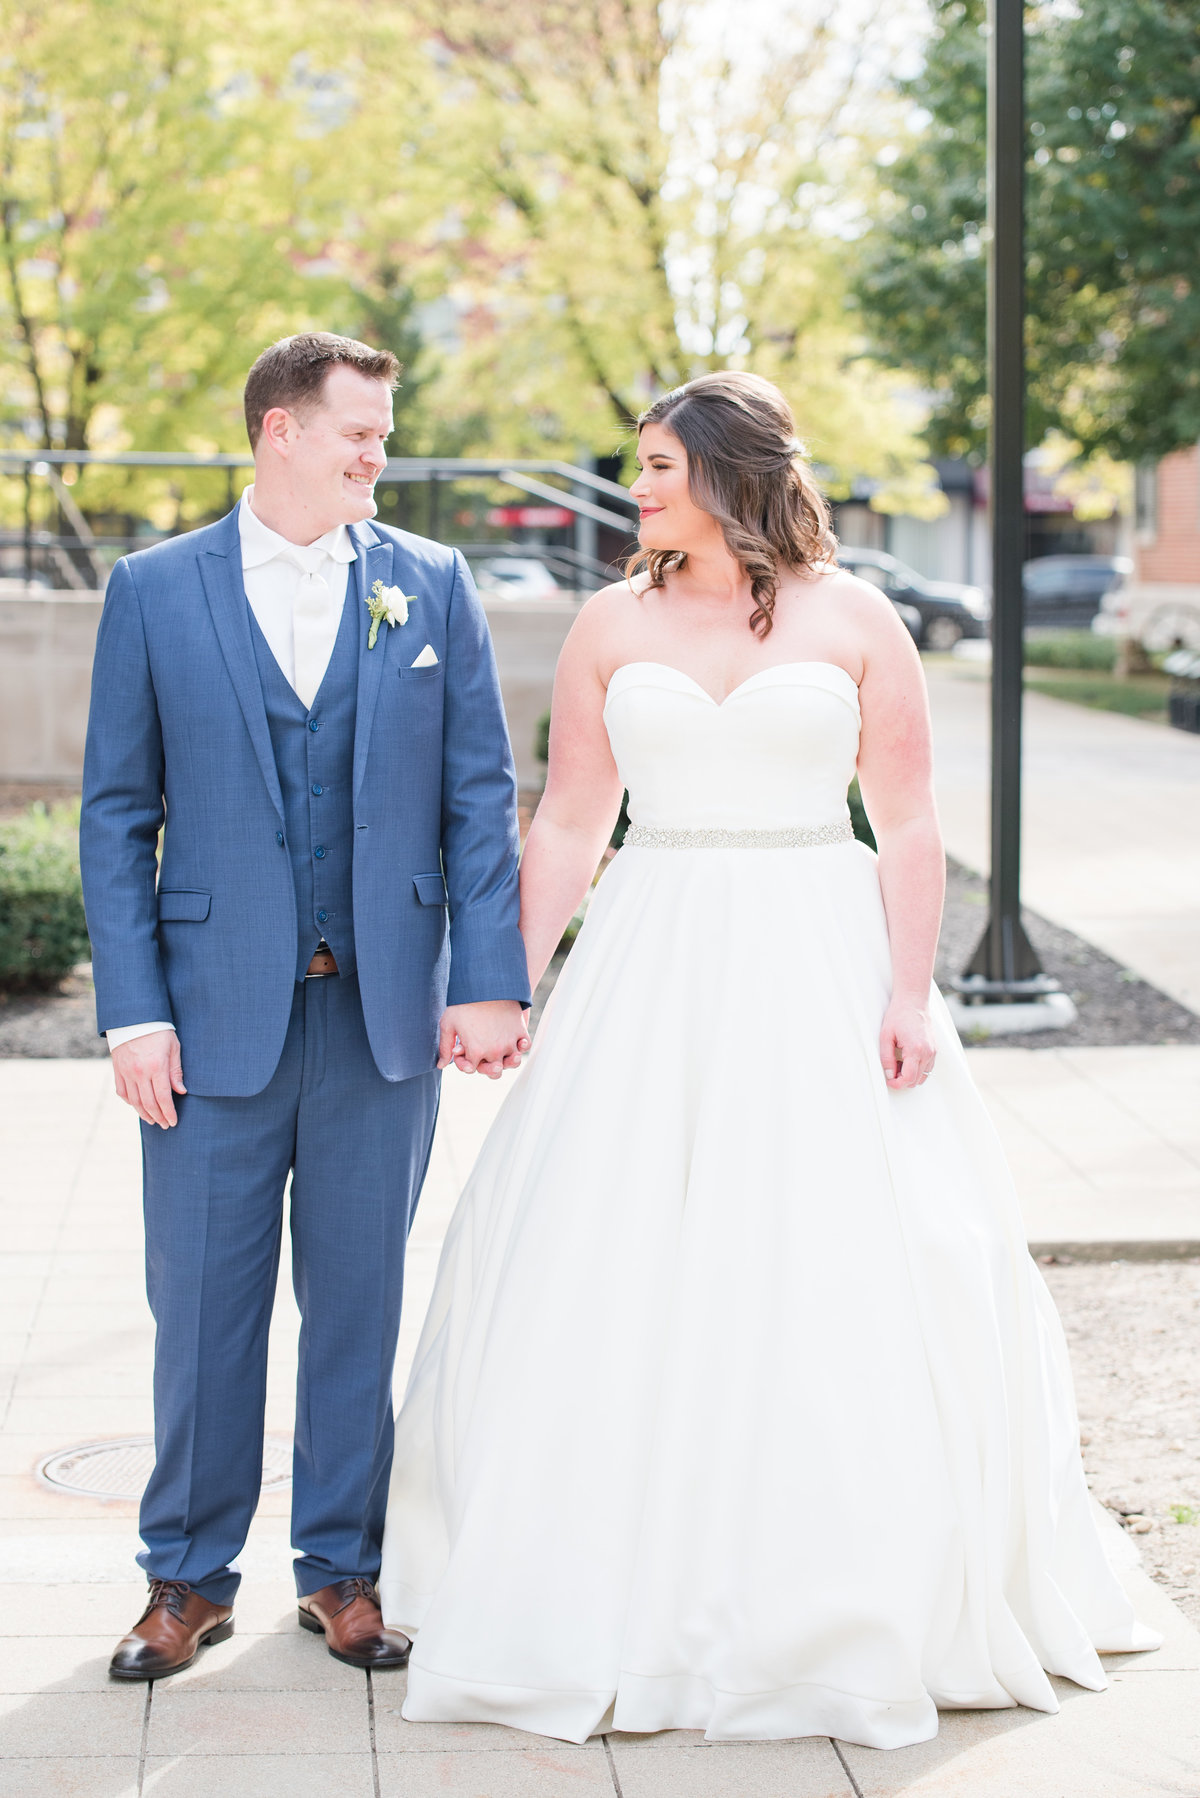 Newlywed Portraits Cait Potter Creative LLC Milltop Potters Bridge Noblesville Square Courthouse Wedding-15